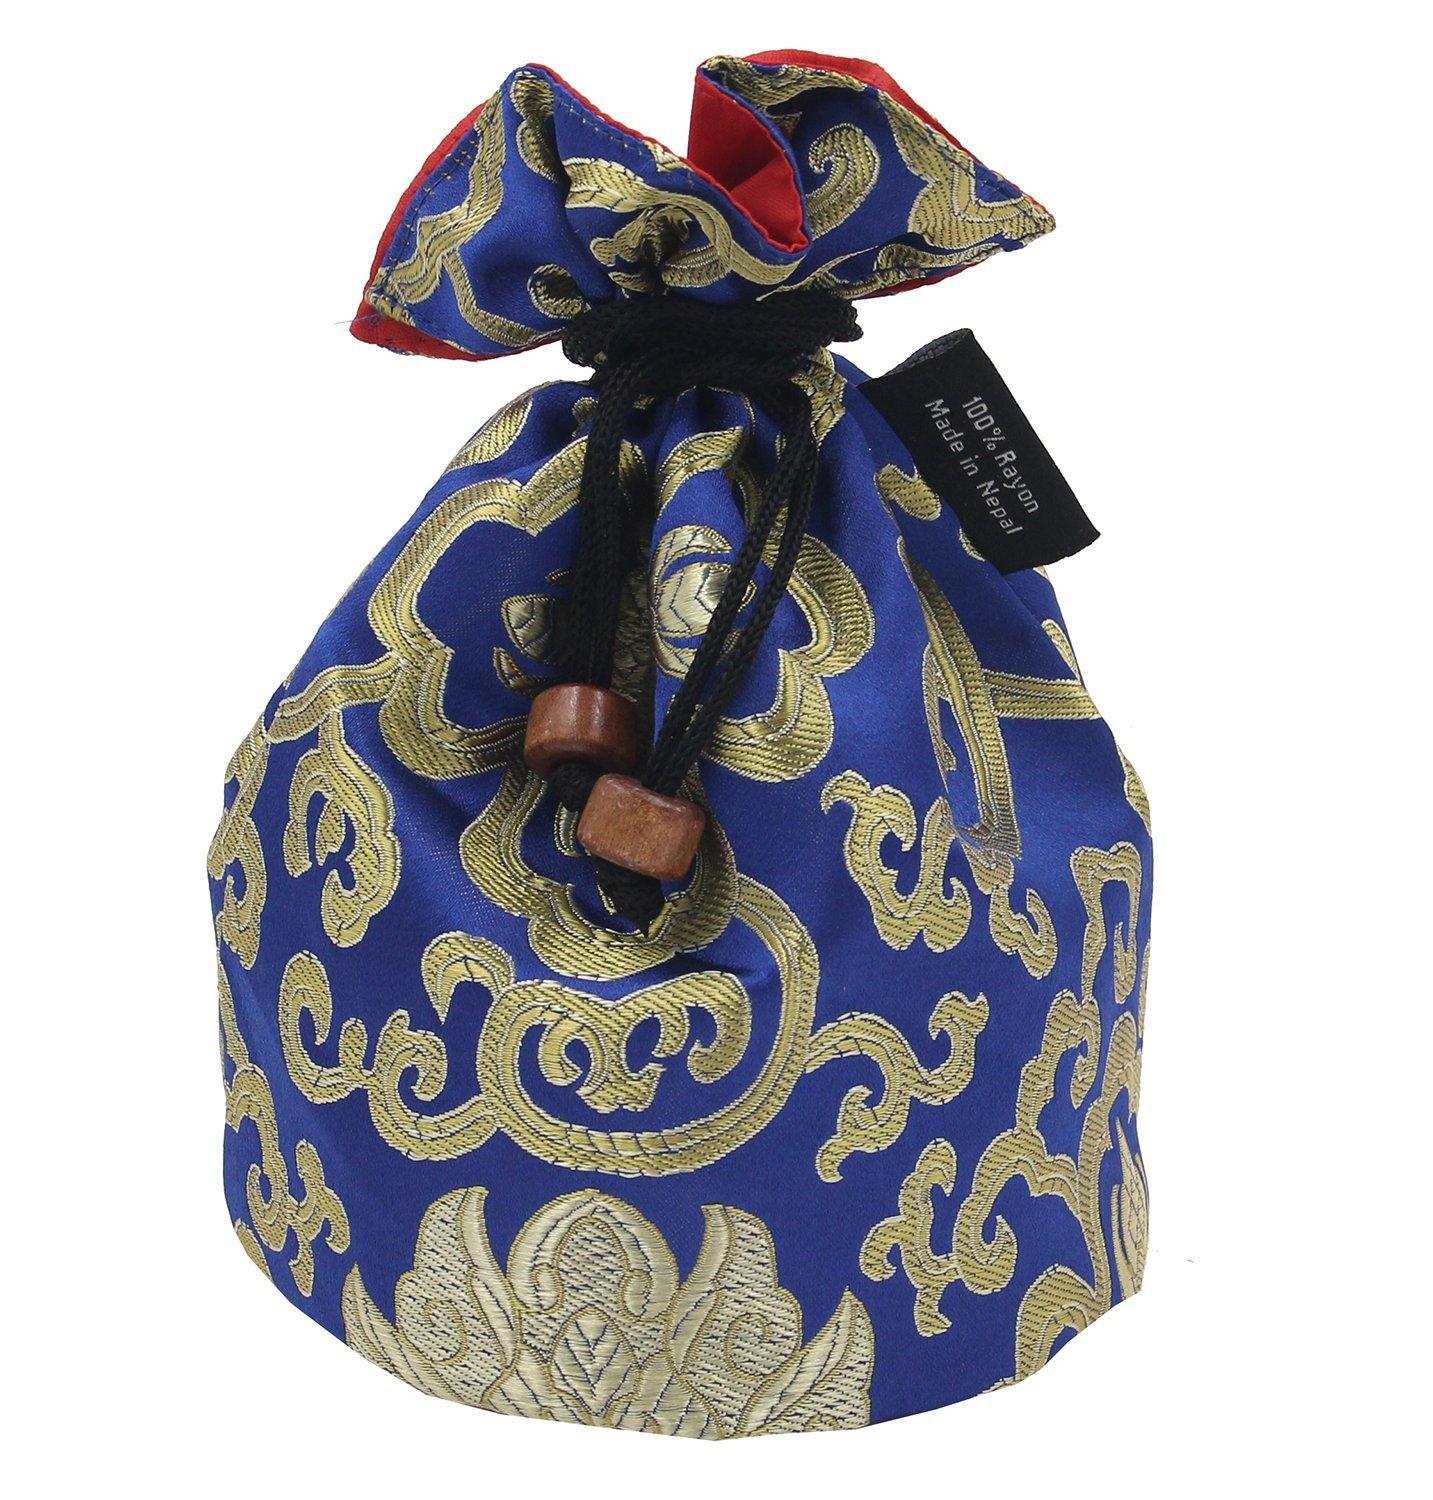 Tibetan Handmade Brocade Cloth Singing Bowl Storage Carrying Case Bag (Blue) Lungta Imports